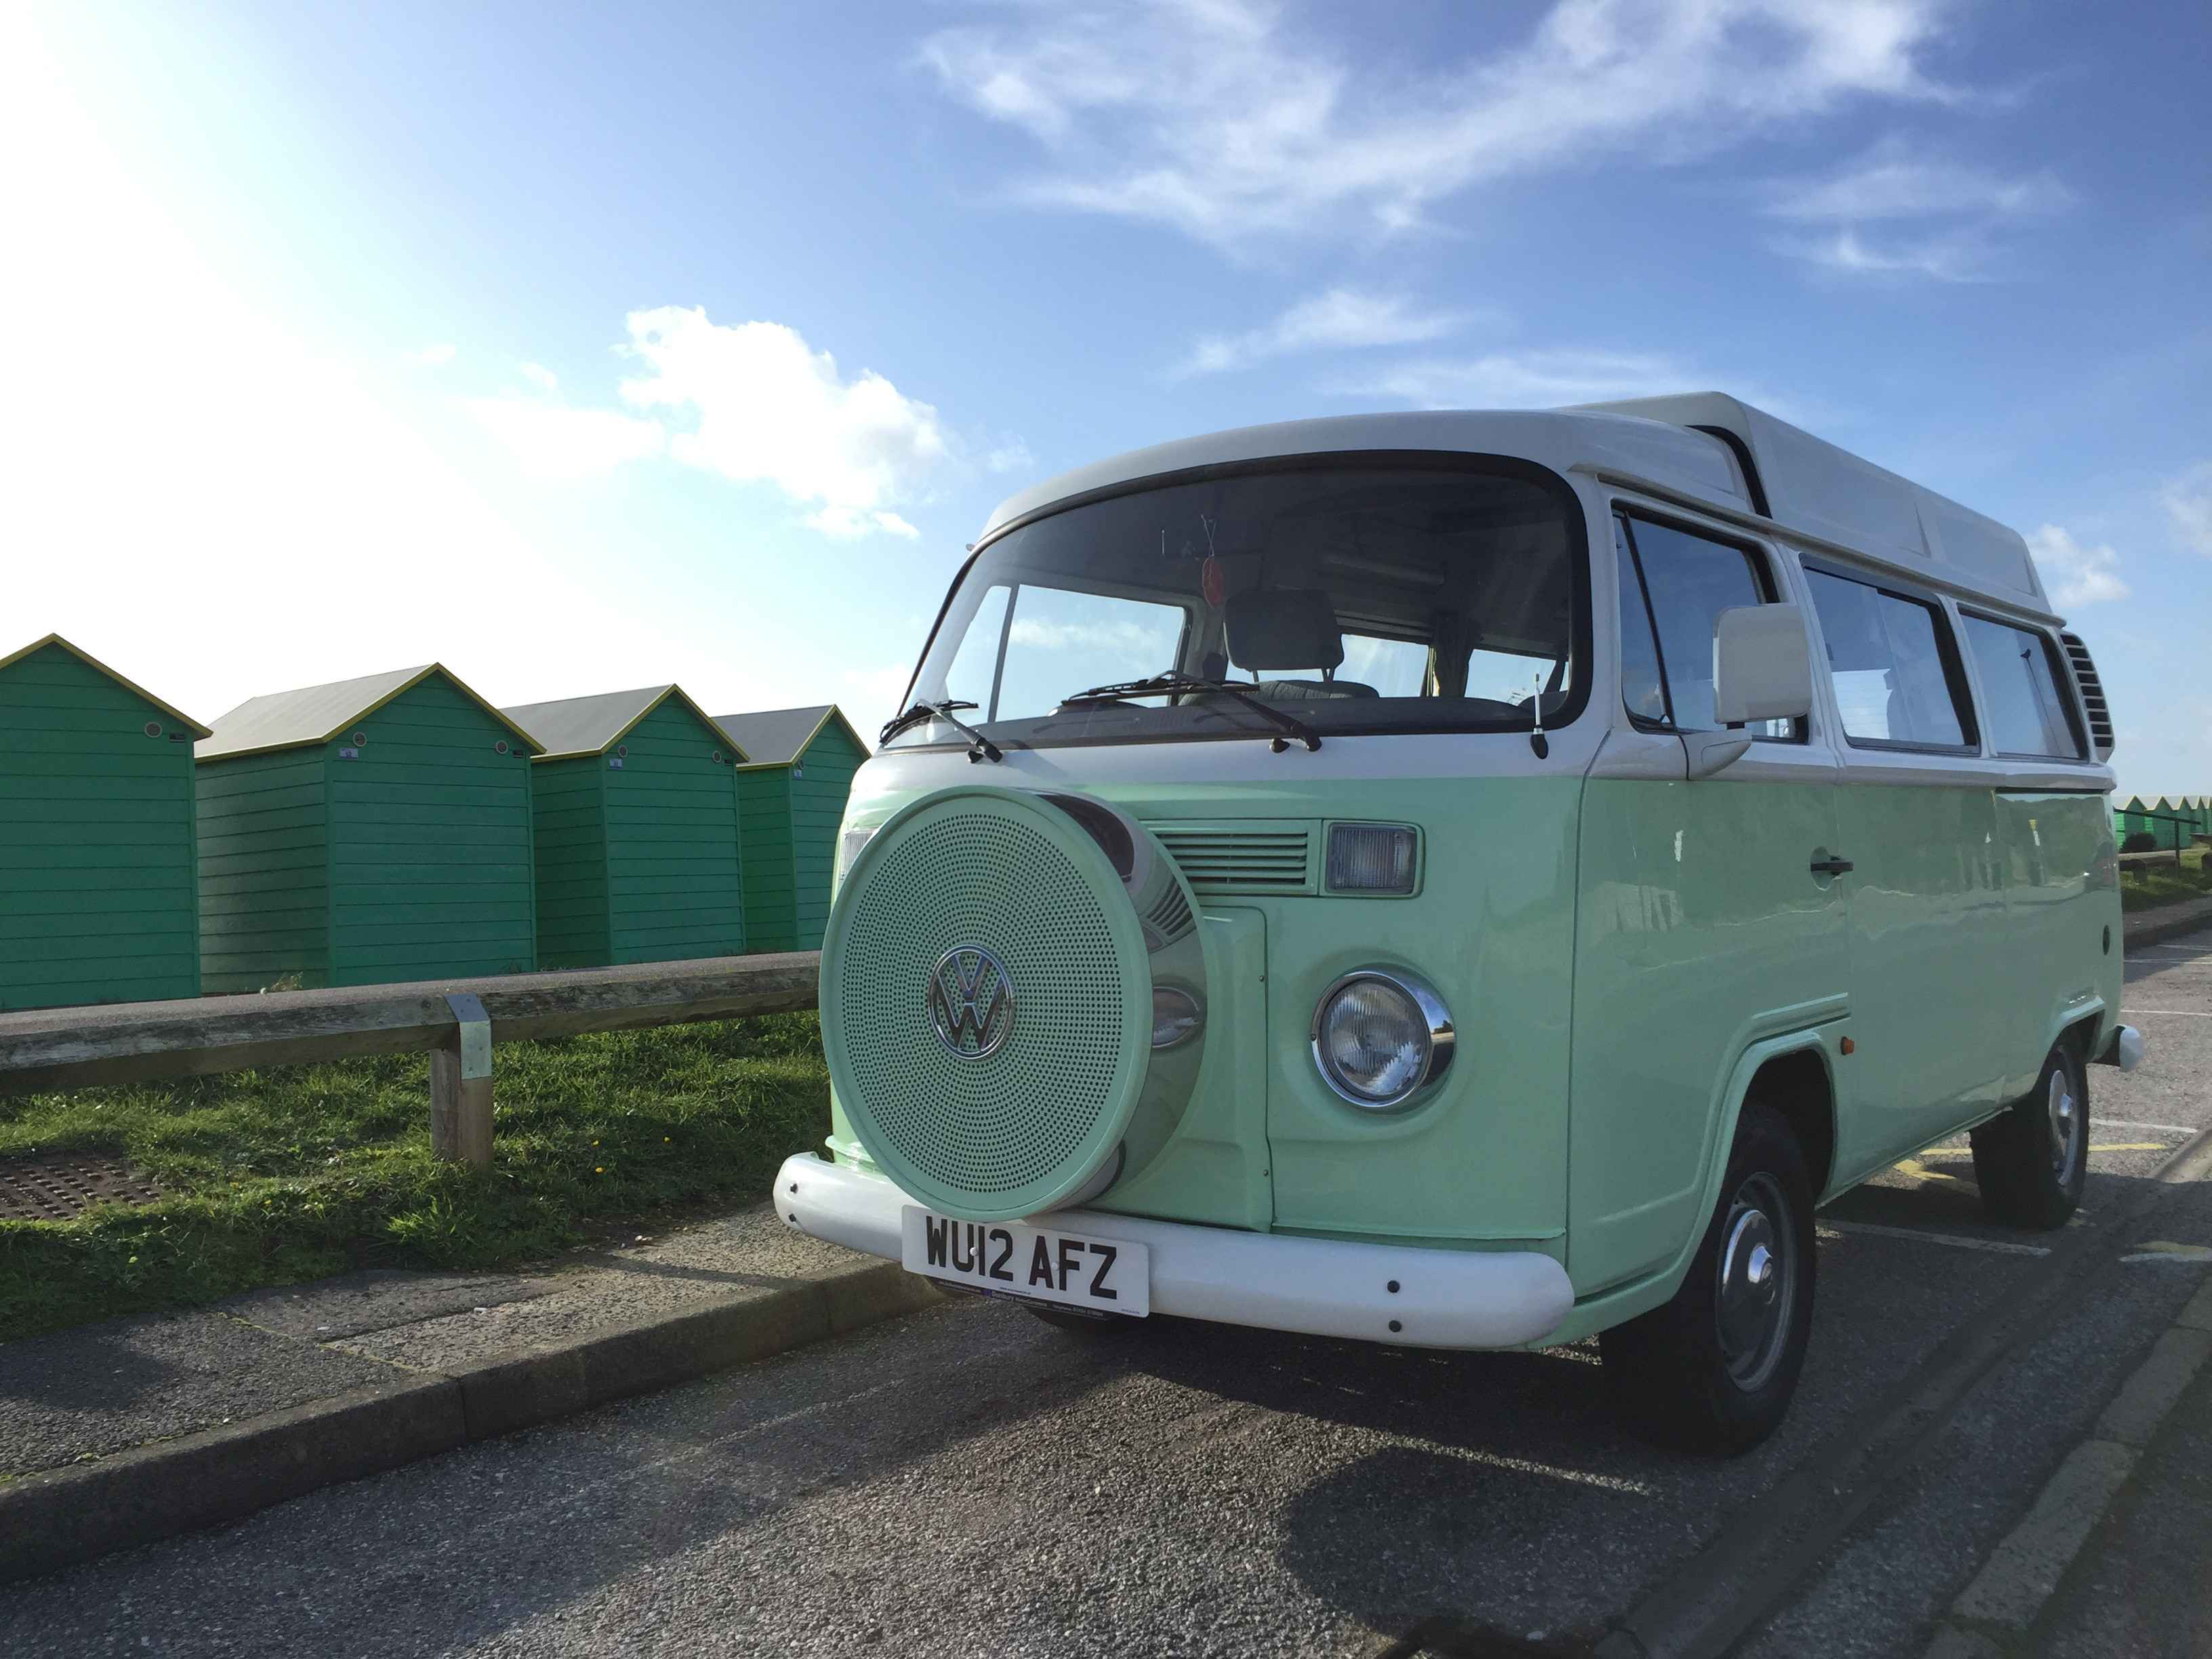 A VW T6 Campervan called Gia and for hire in ticehurst, East Sussex